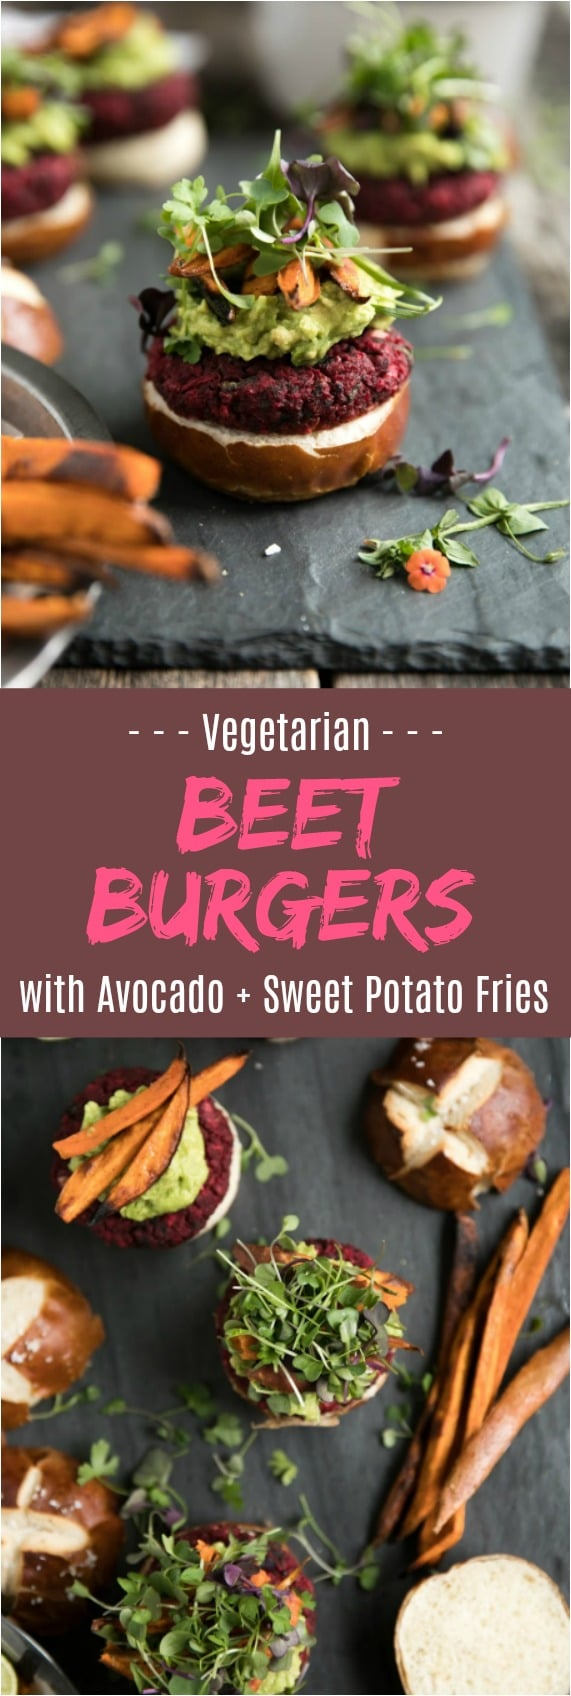 Vegetarian beet burgers with avocado and sweet potato fries @theforkedspoon #sweetpotato #fries #healthy #vegetarian #beets #avocado #beetburgers